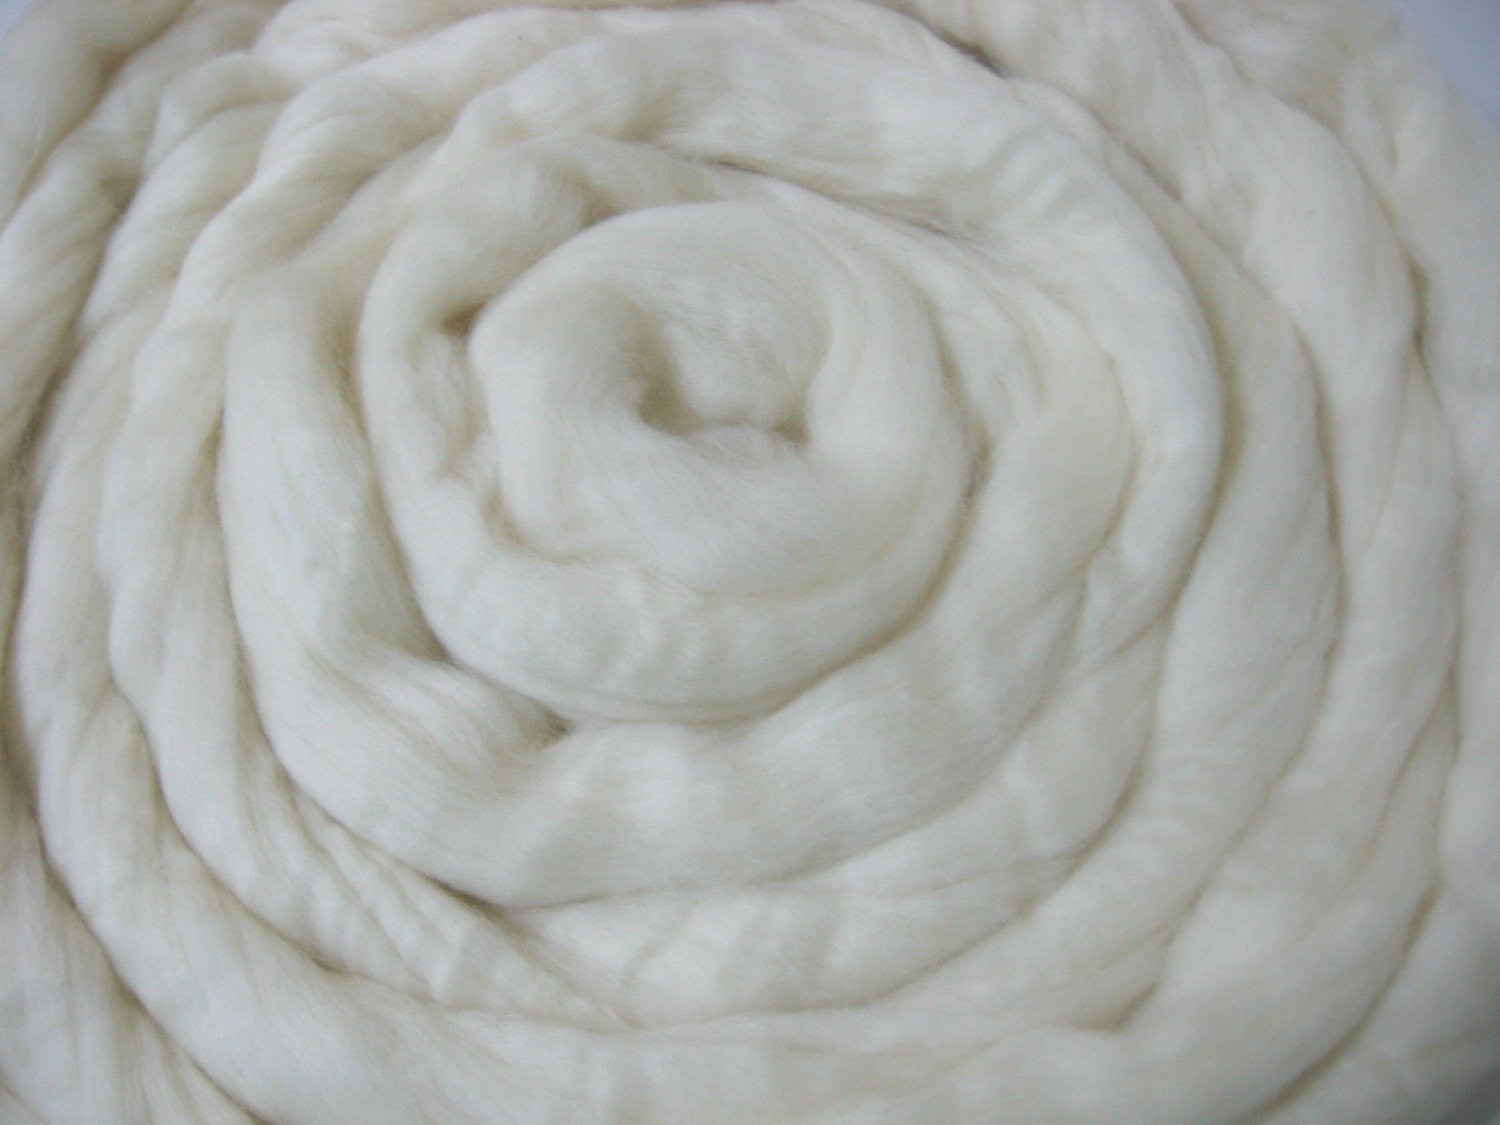 Roving Yarn Elegant Merino Wool Roving Undyed & Natural 4 Ounces Free Of Marvelous 45 Pictures Roving Yarn